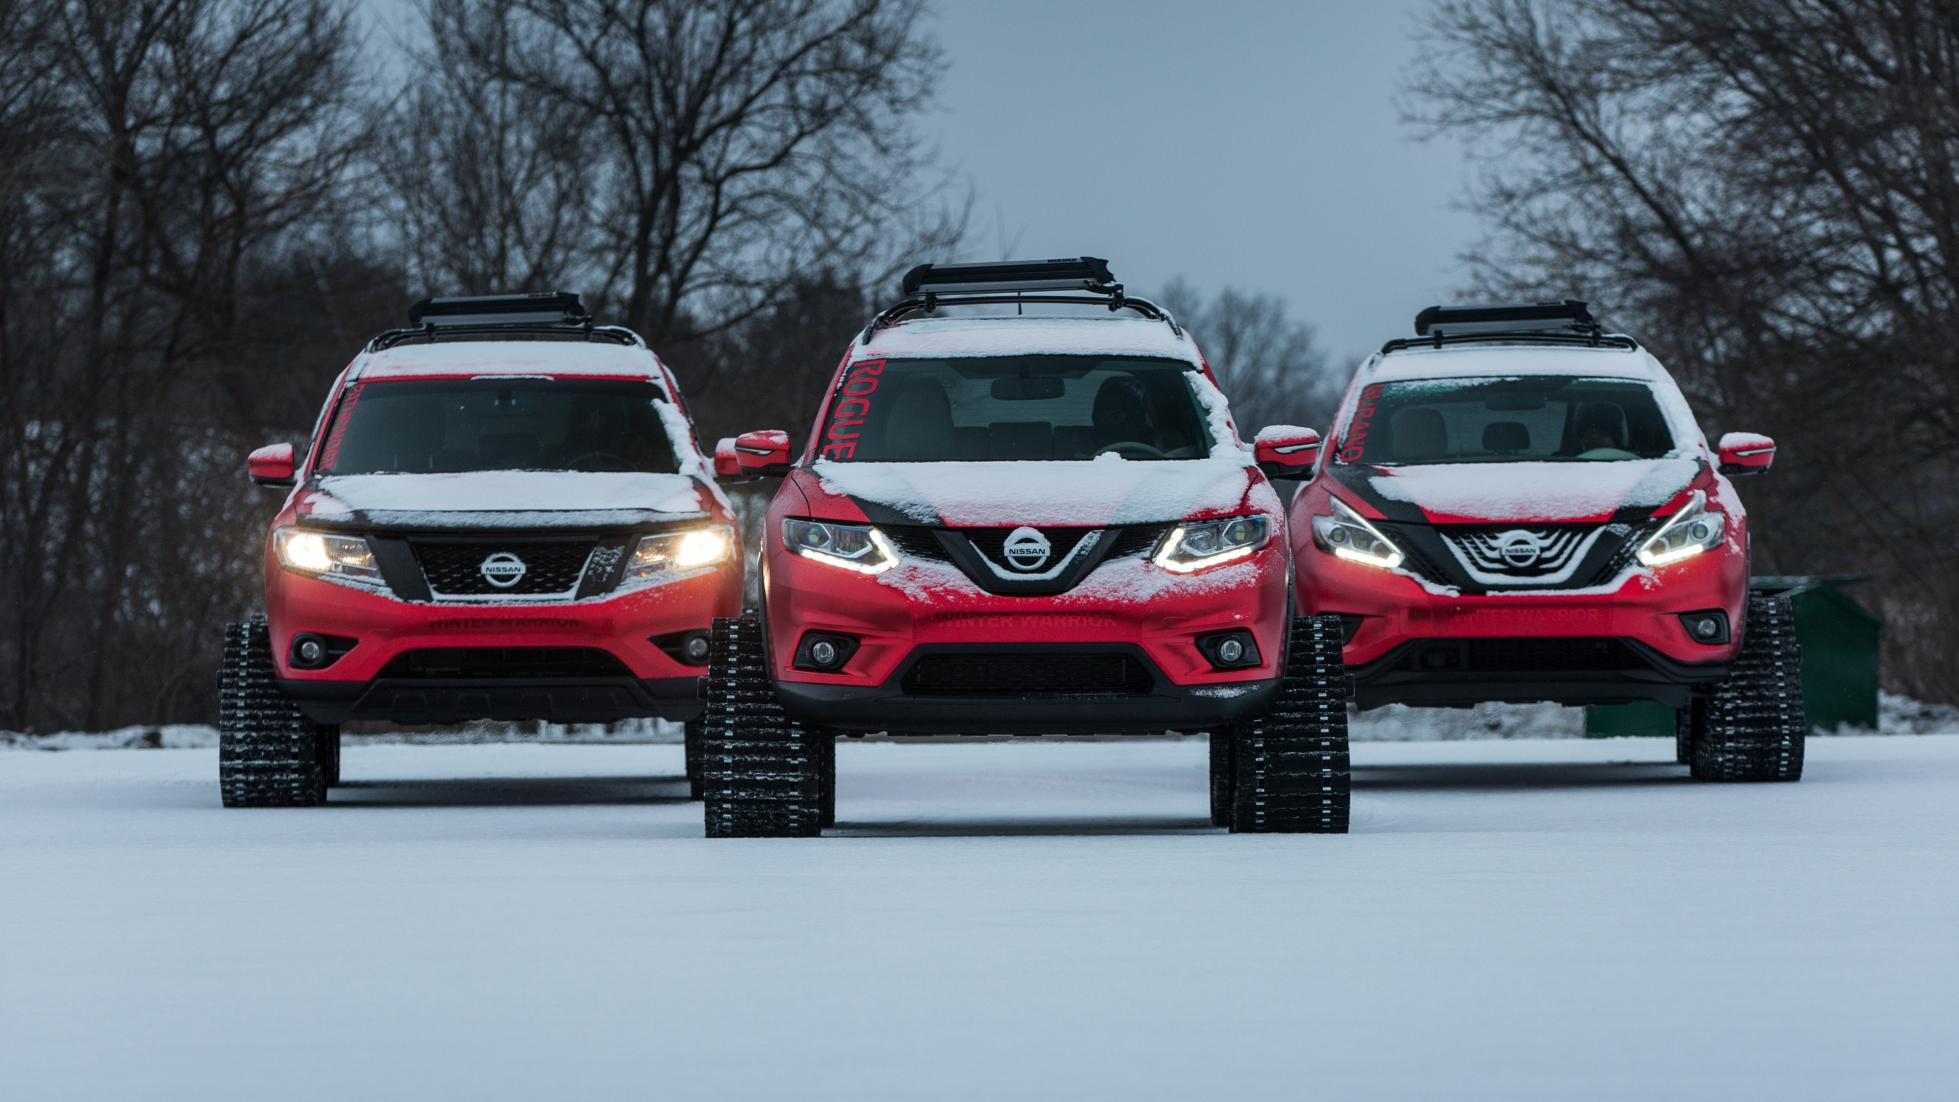 nissan_winter_warriors_12